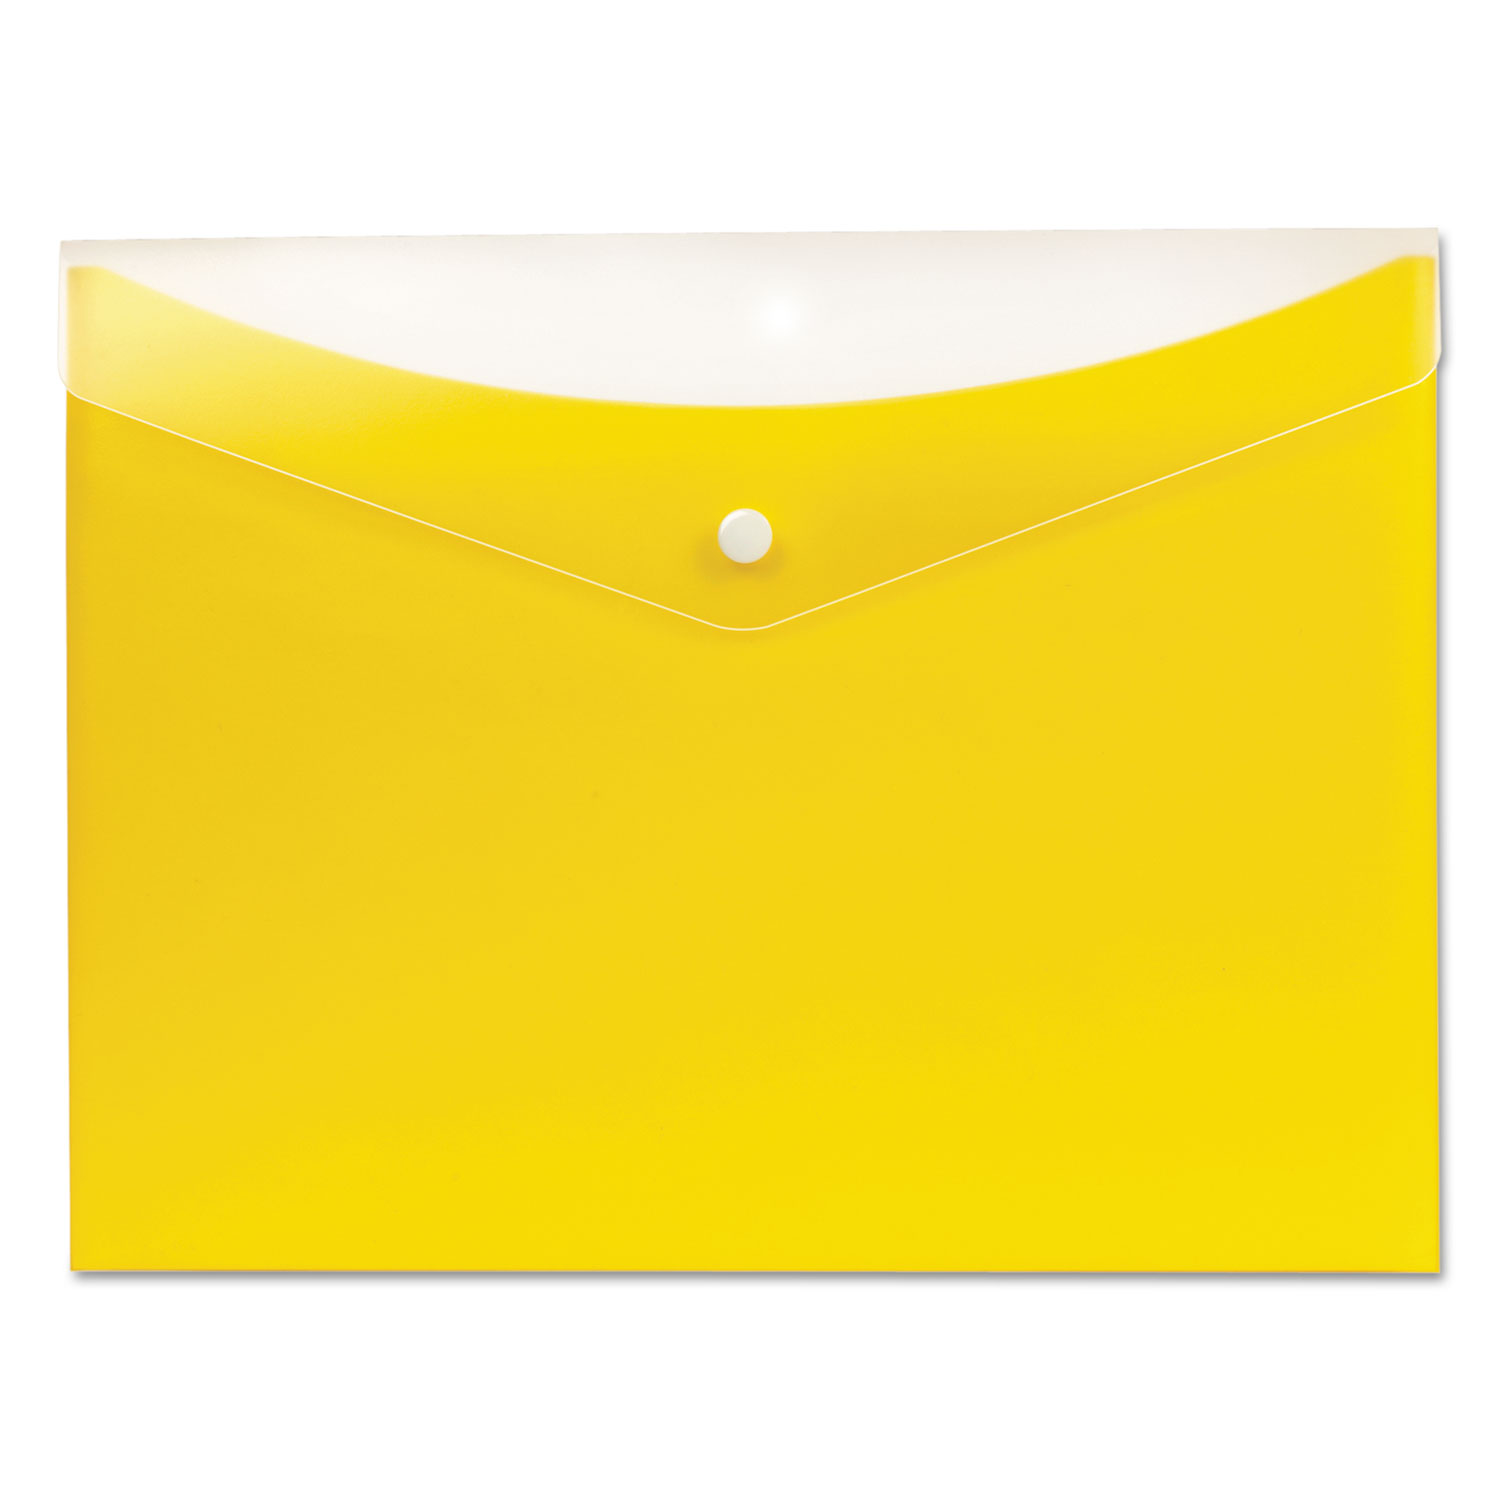 Poly Snap Envelope, Snap Closure, 8.5 x 11, Lemon